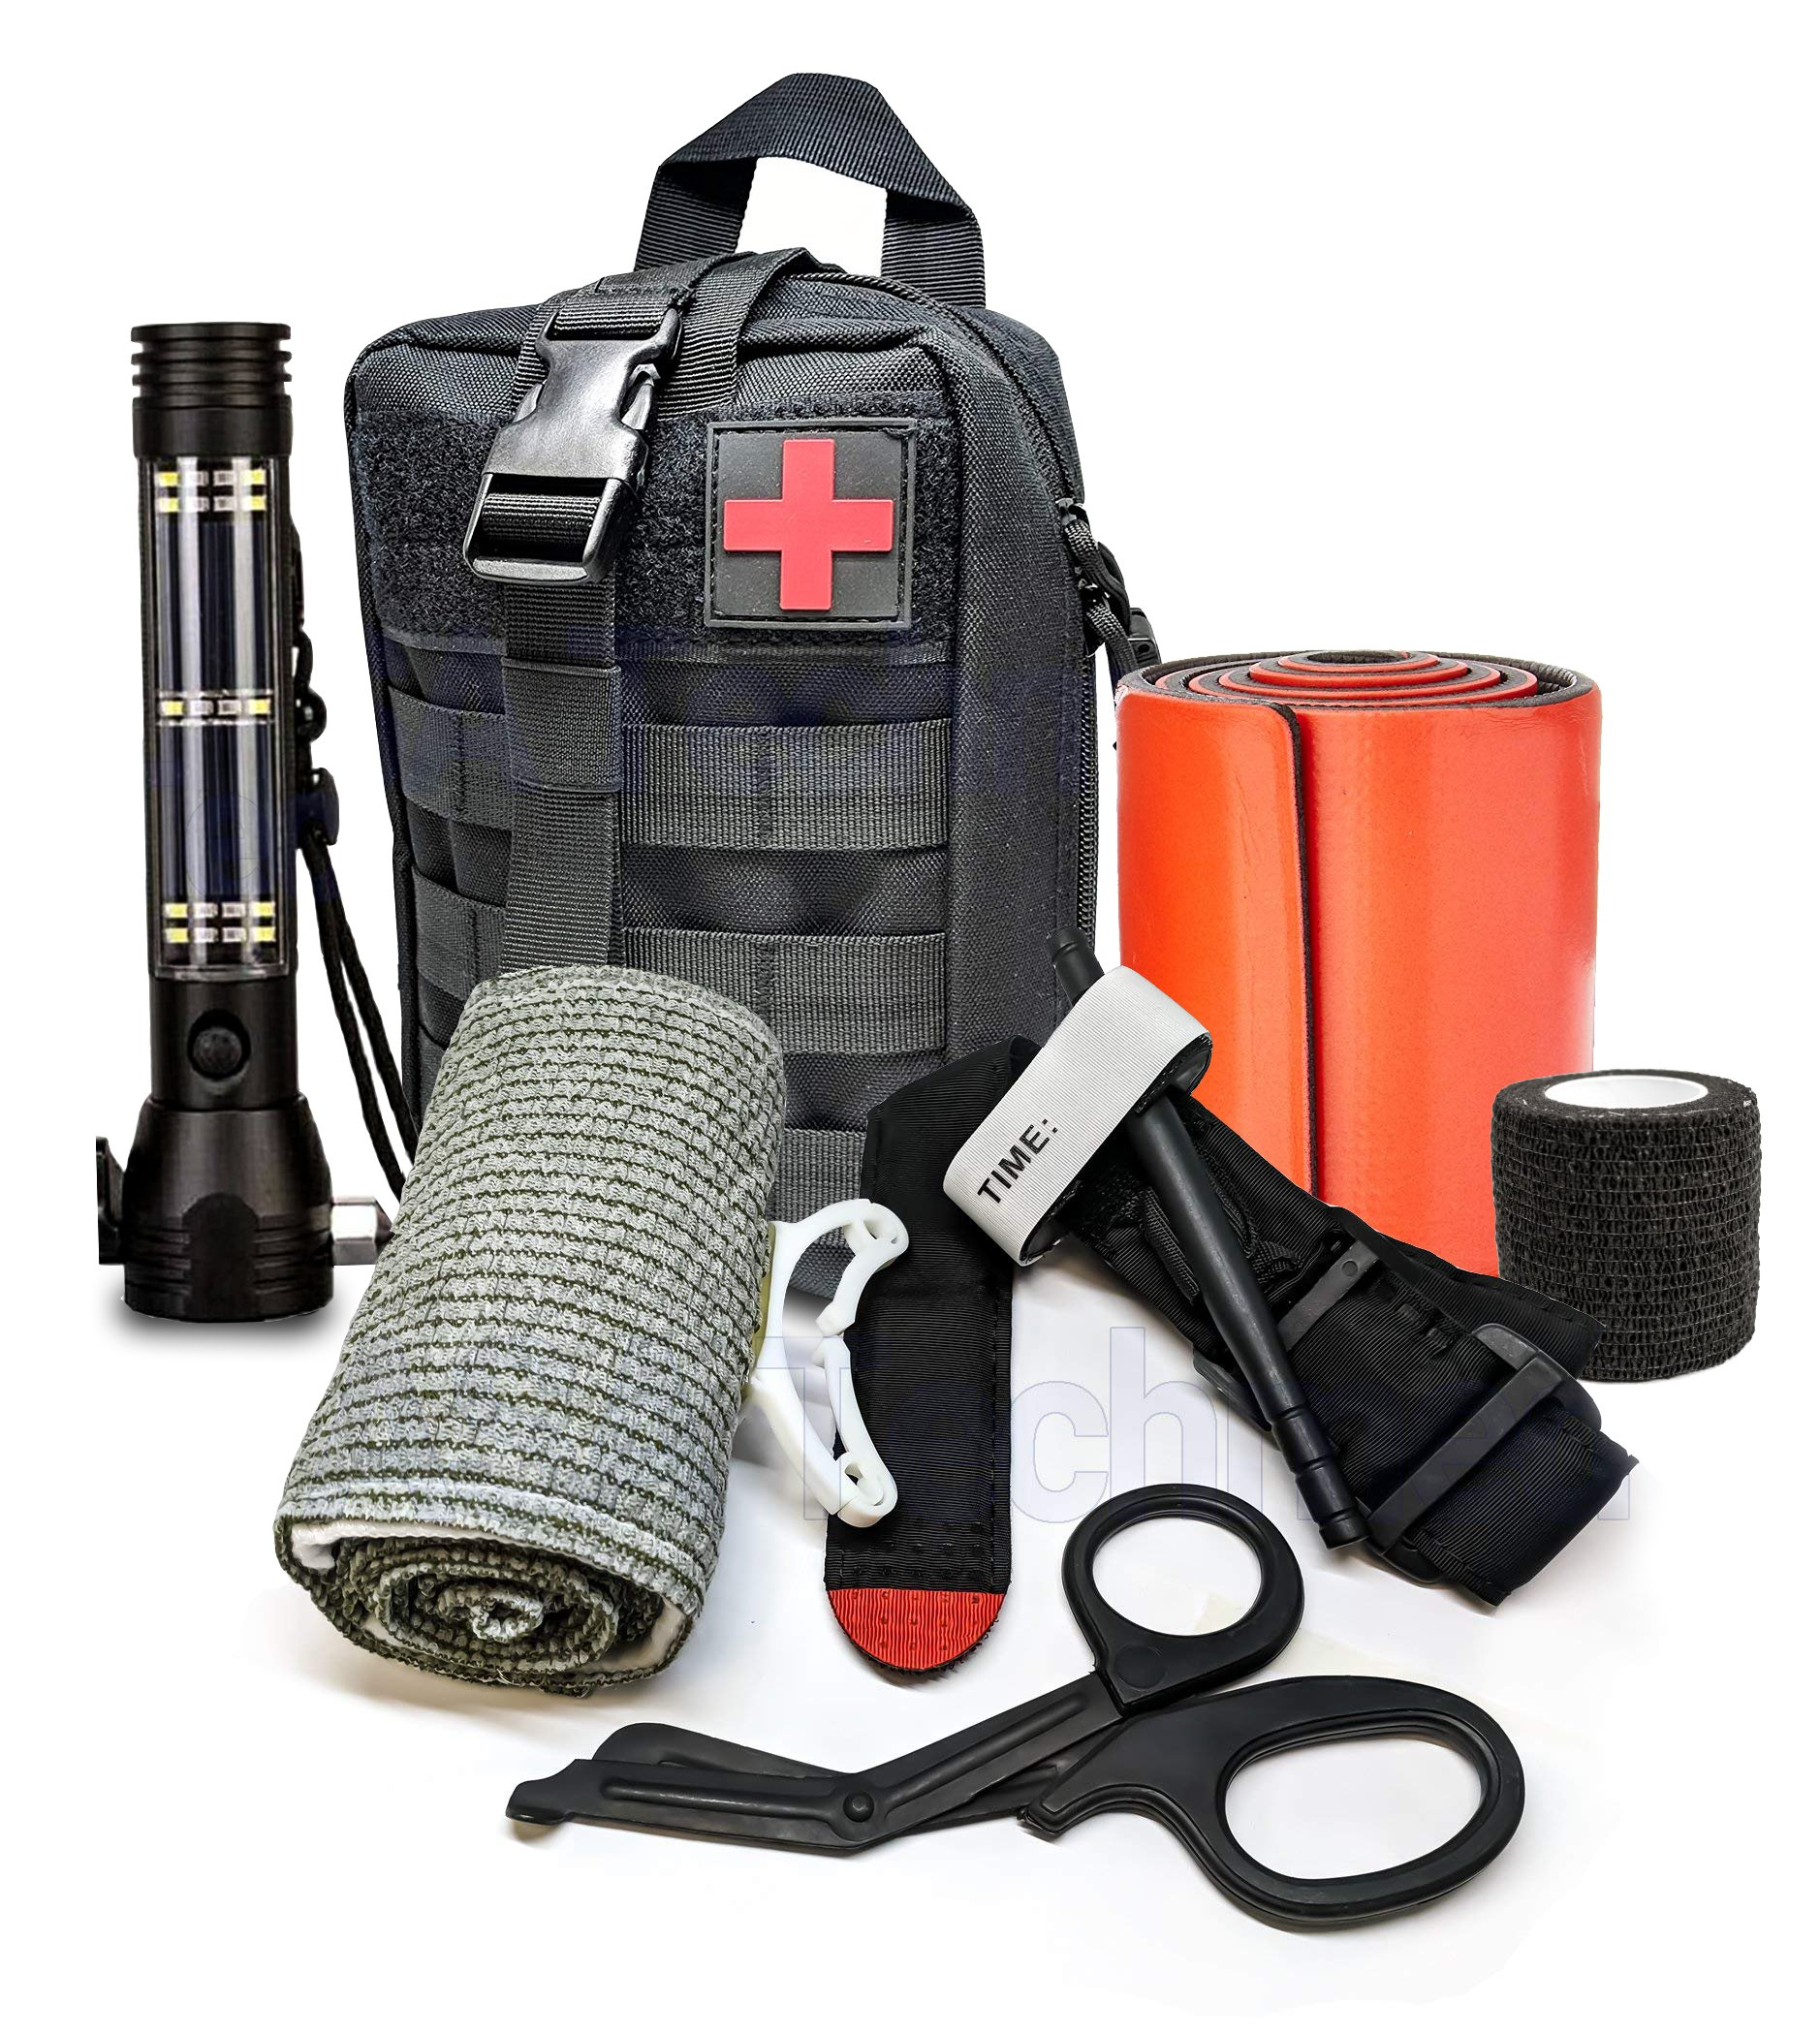 Advance Military Style First Aid Survival Kit Emergency Kit Earthquake Survival Kit IFAK Molle Bag for Car Home Work Office Boat or Adventures + Roadside Rescuer 9-IN-1 Gadget Solar Powered Flashlight by ASATechmed (Image #3)